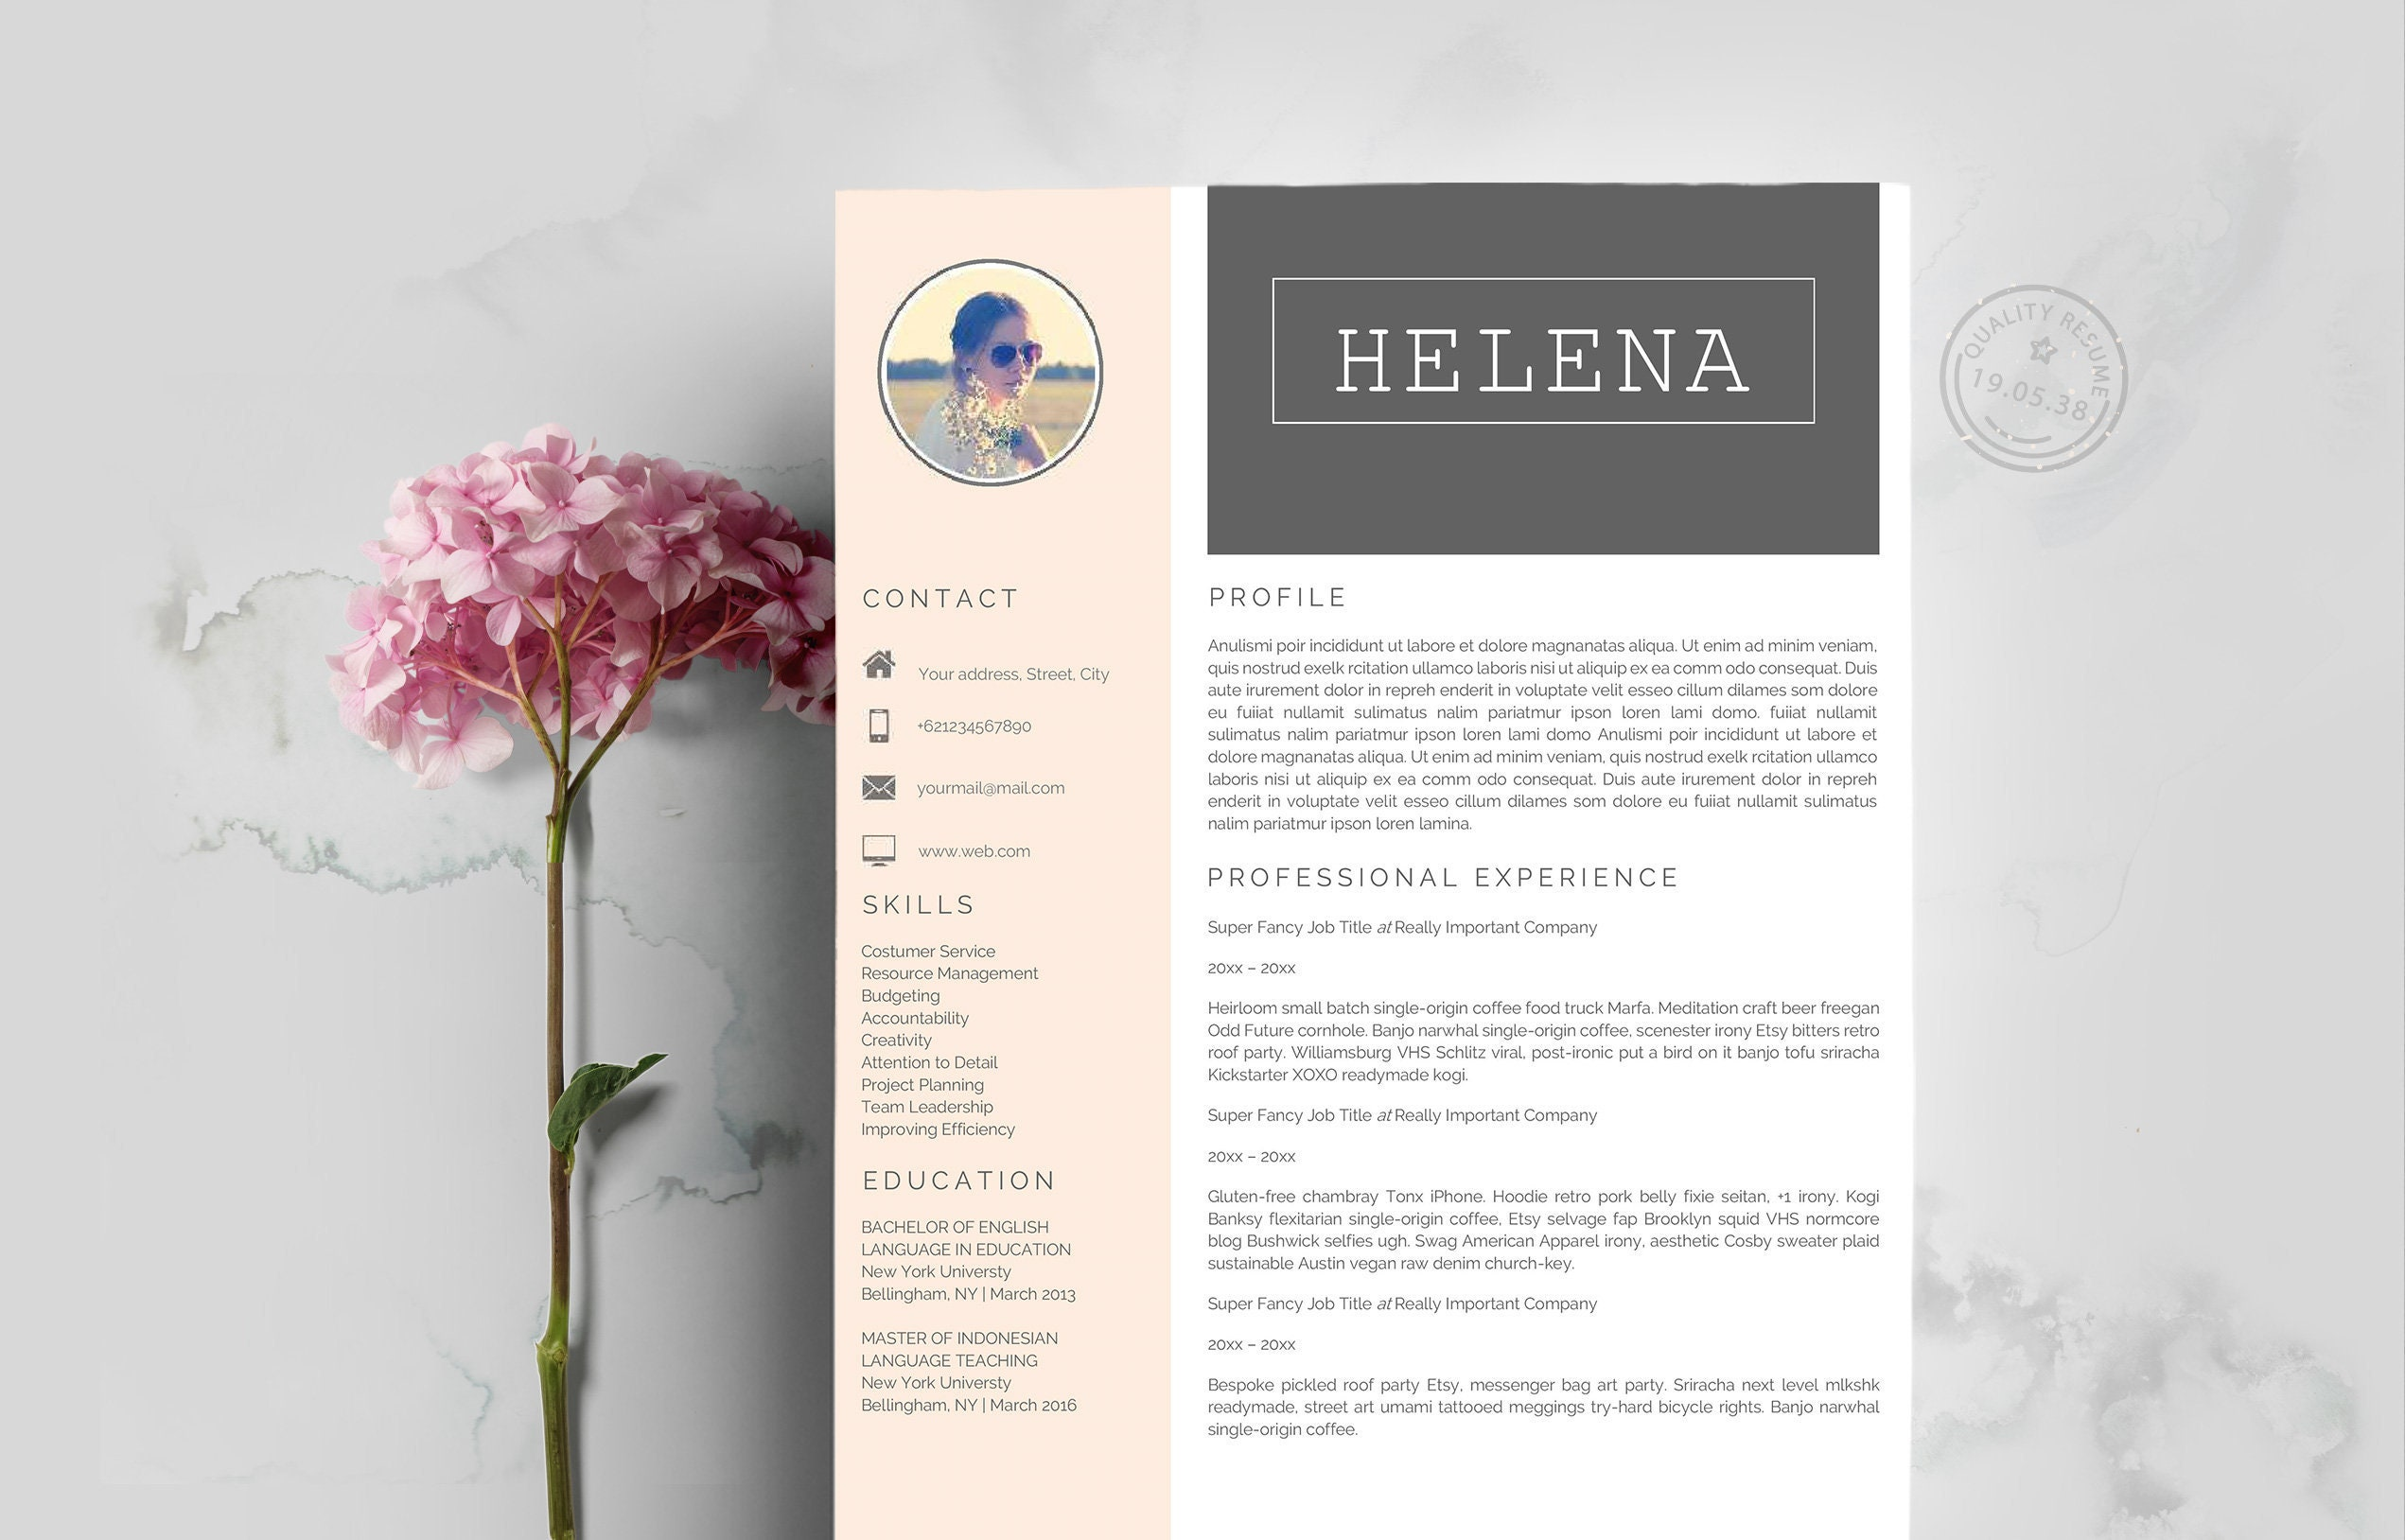 Resume Template Pages | Professional Resume Template + Cover Letter for  Word Professional Resume Design | Instant Download for MS Word